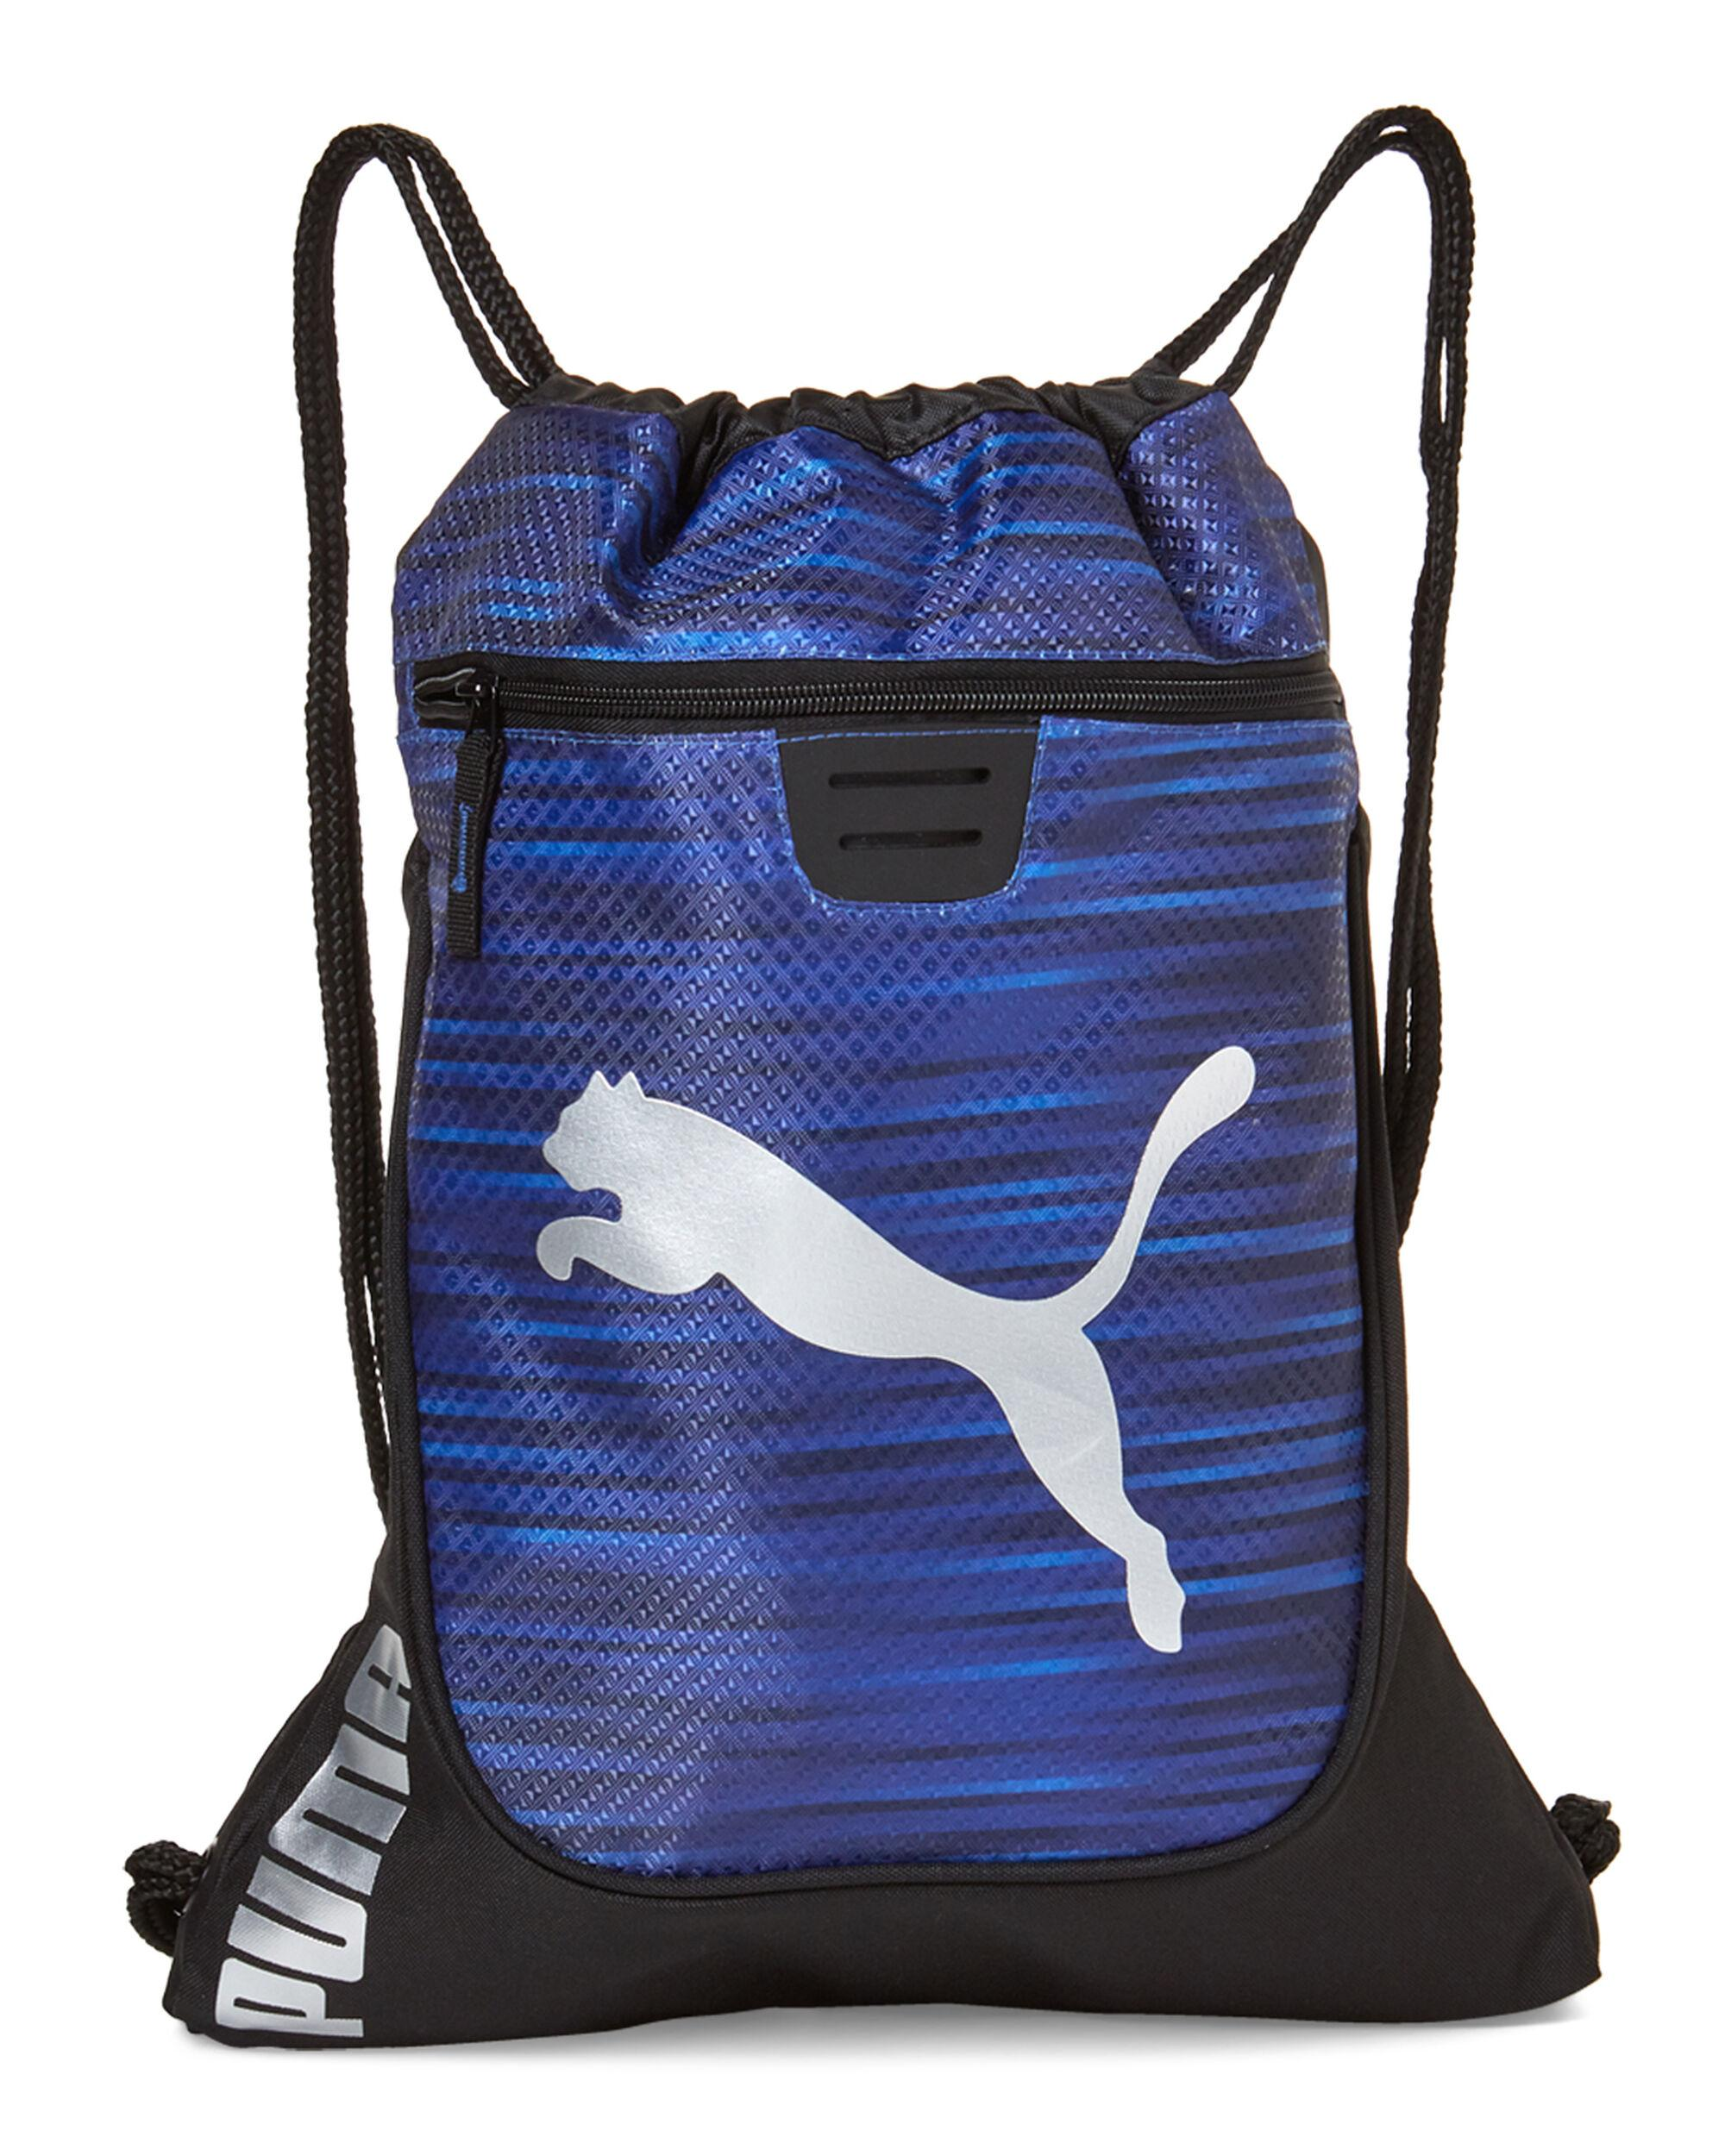 32291618f89 PUMA Blue Evercat Contender Carrysack in Blue for Men - Lyst